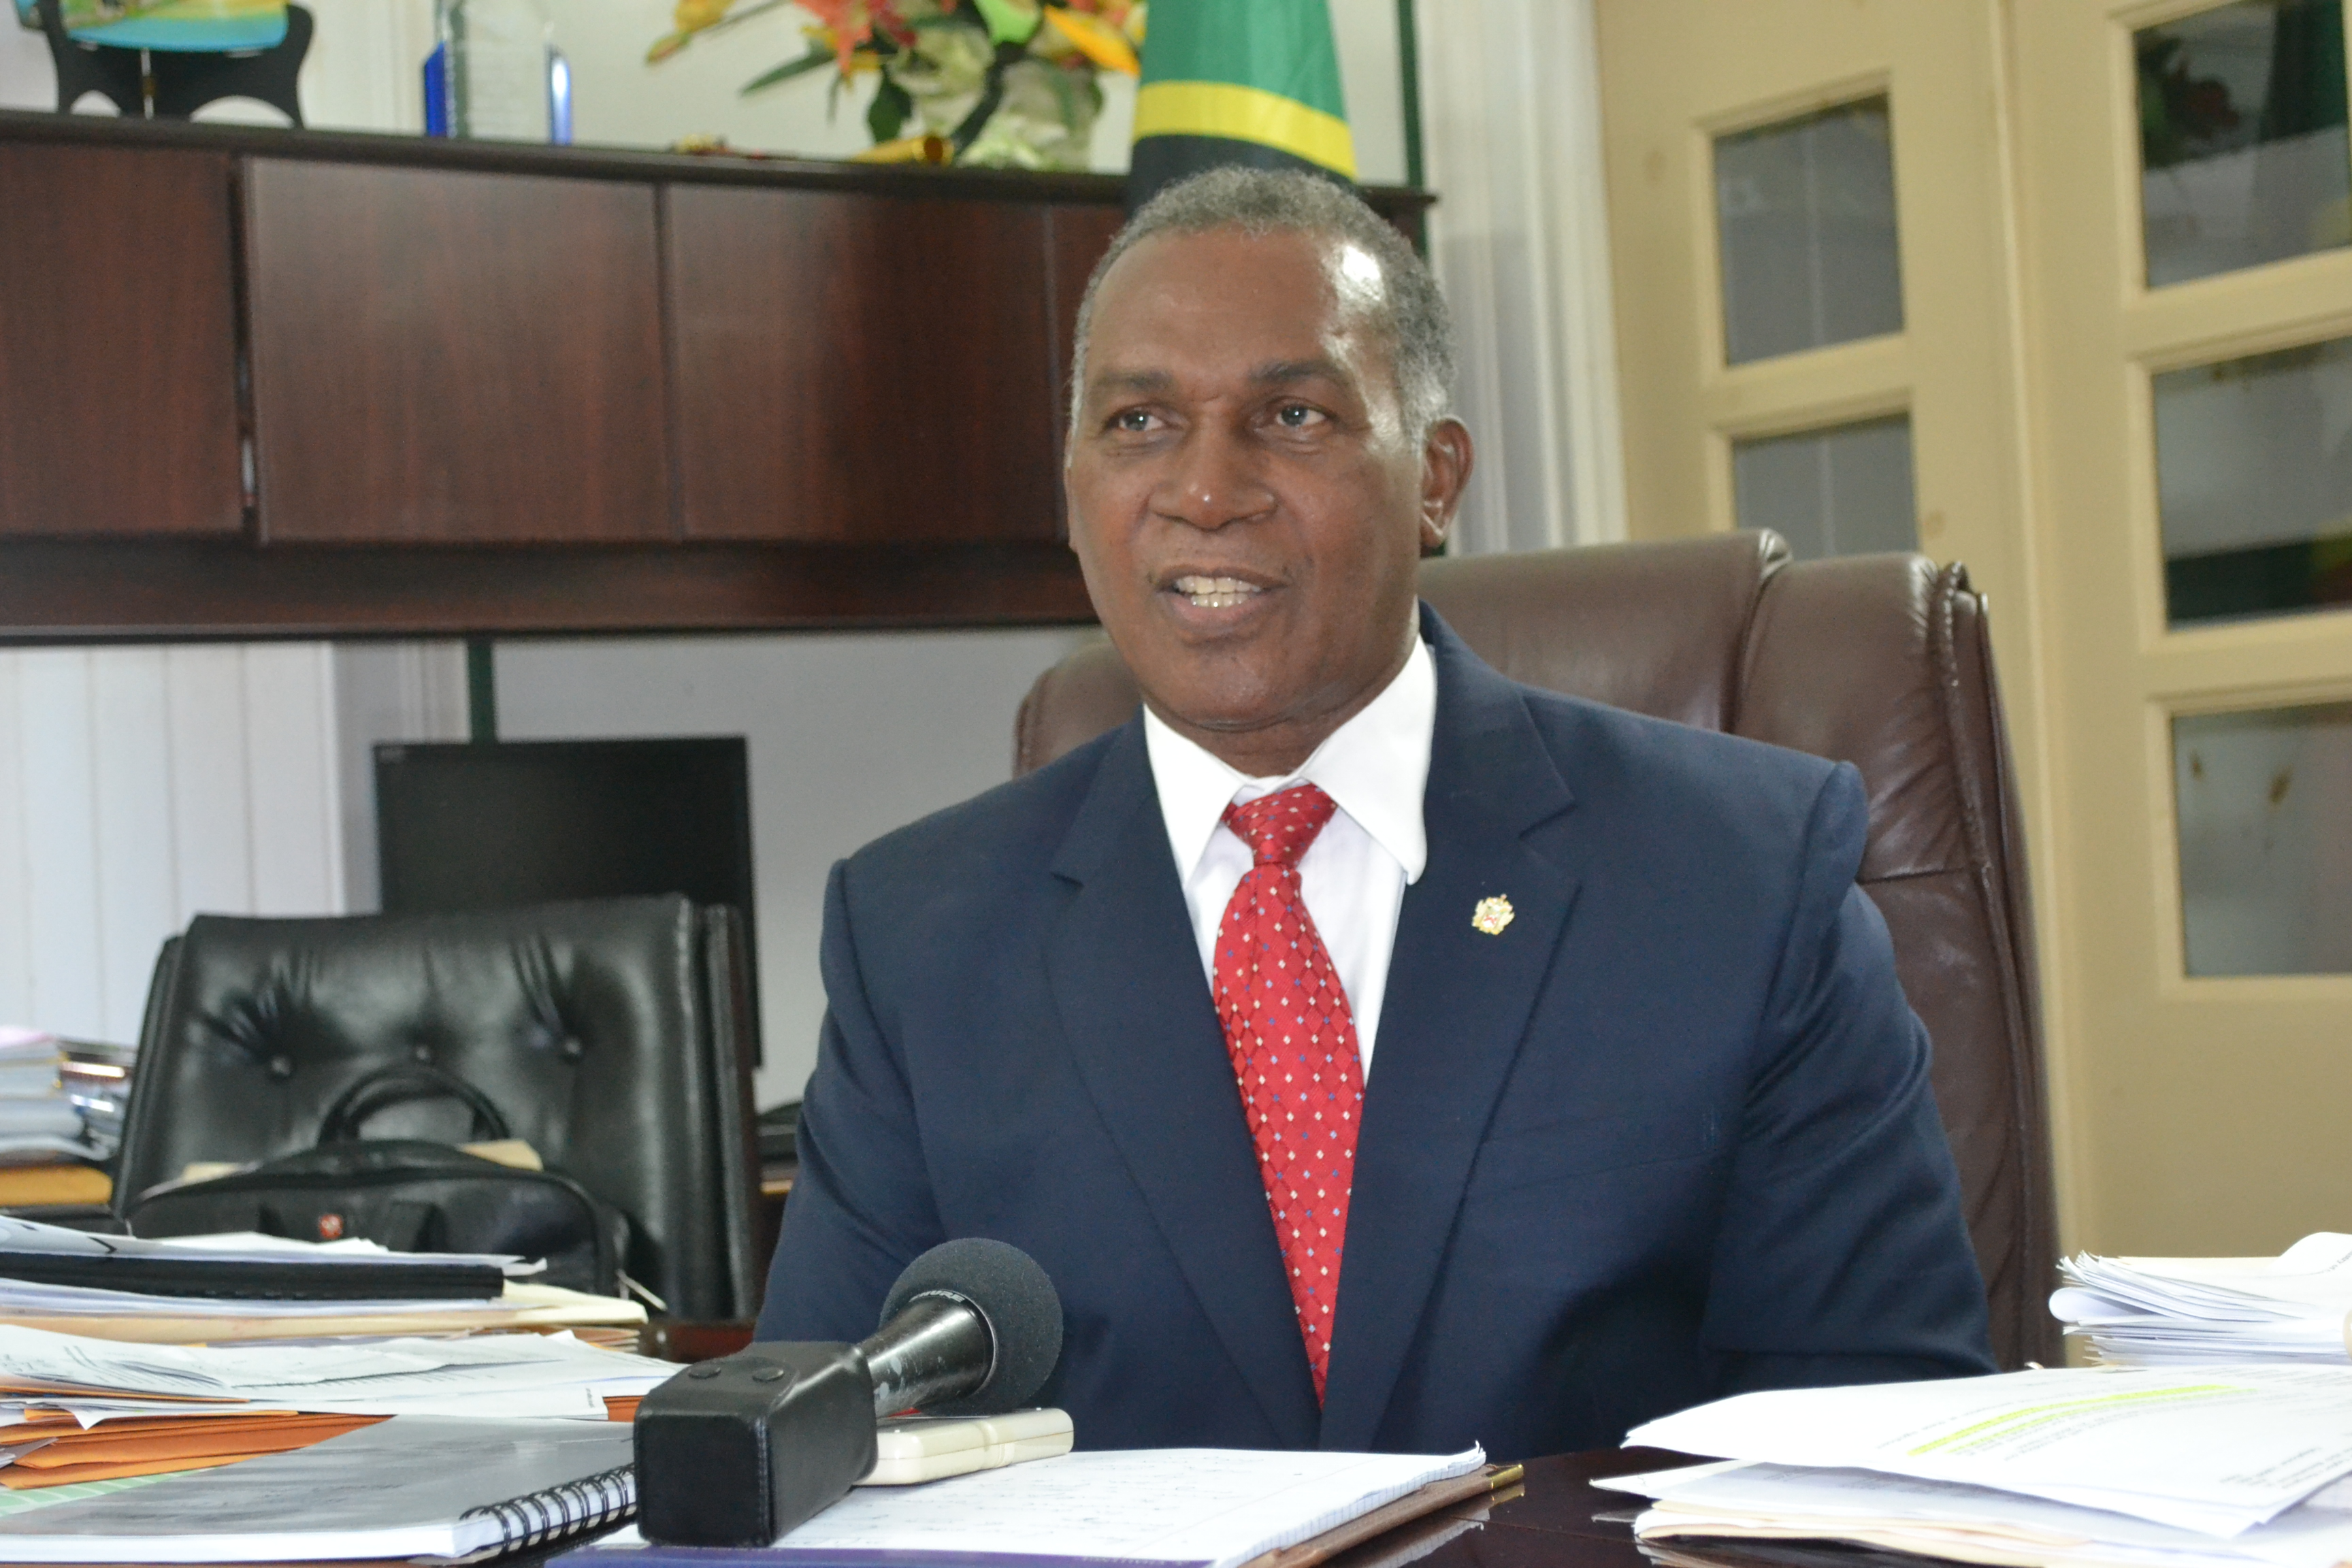 Premier of Nevis, Honourable Vance Amory, reporting on the Permanent Secretaries meeting convened in the Premier's Conference Room in the Premier's Ministry at Bath Hotel on January 22, 2016